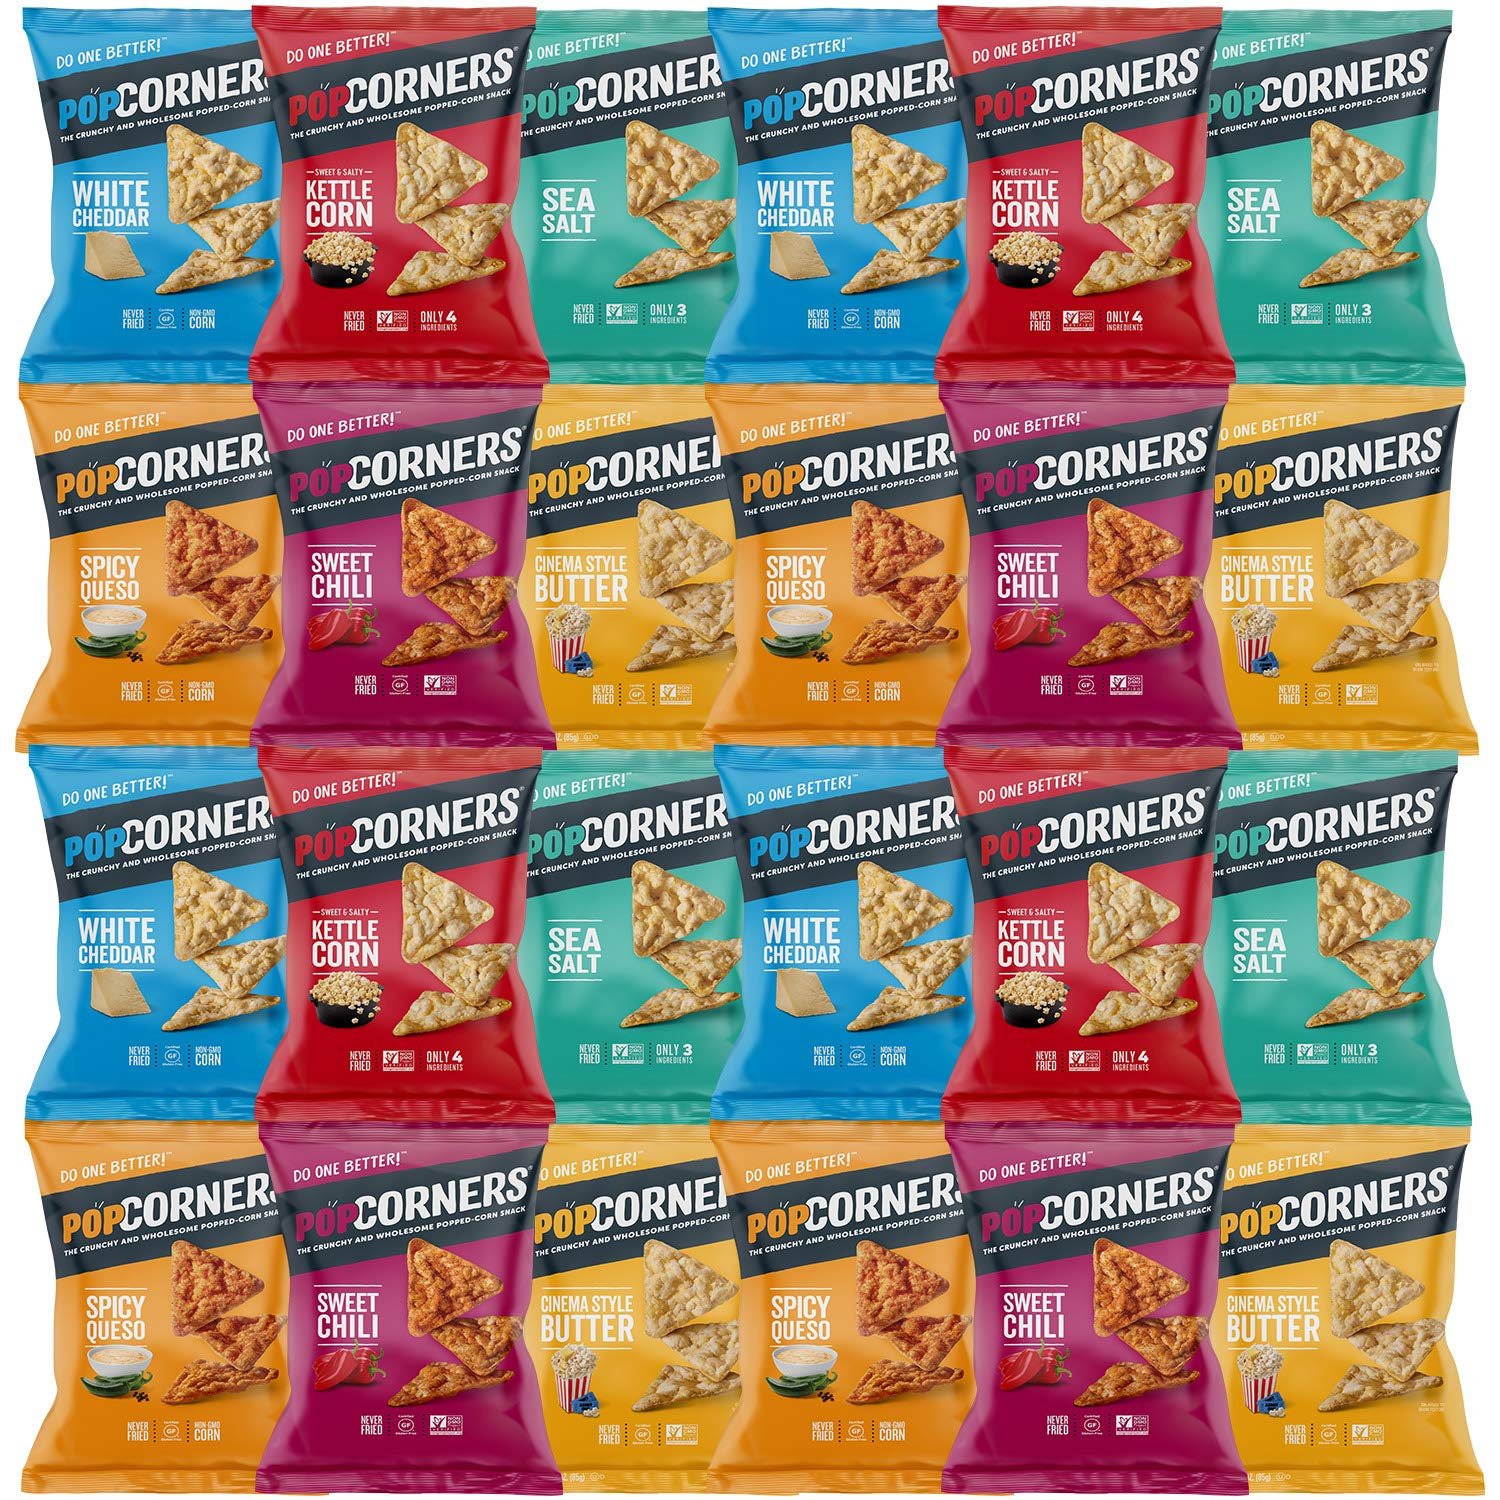 Snack Chest Popcorners Mixed Premium Variety Sampler Package, Many Different Flavors, 1 Ounce Bags (24 Count) by Snack Chest